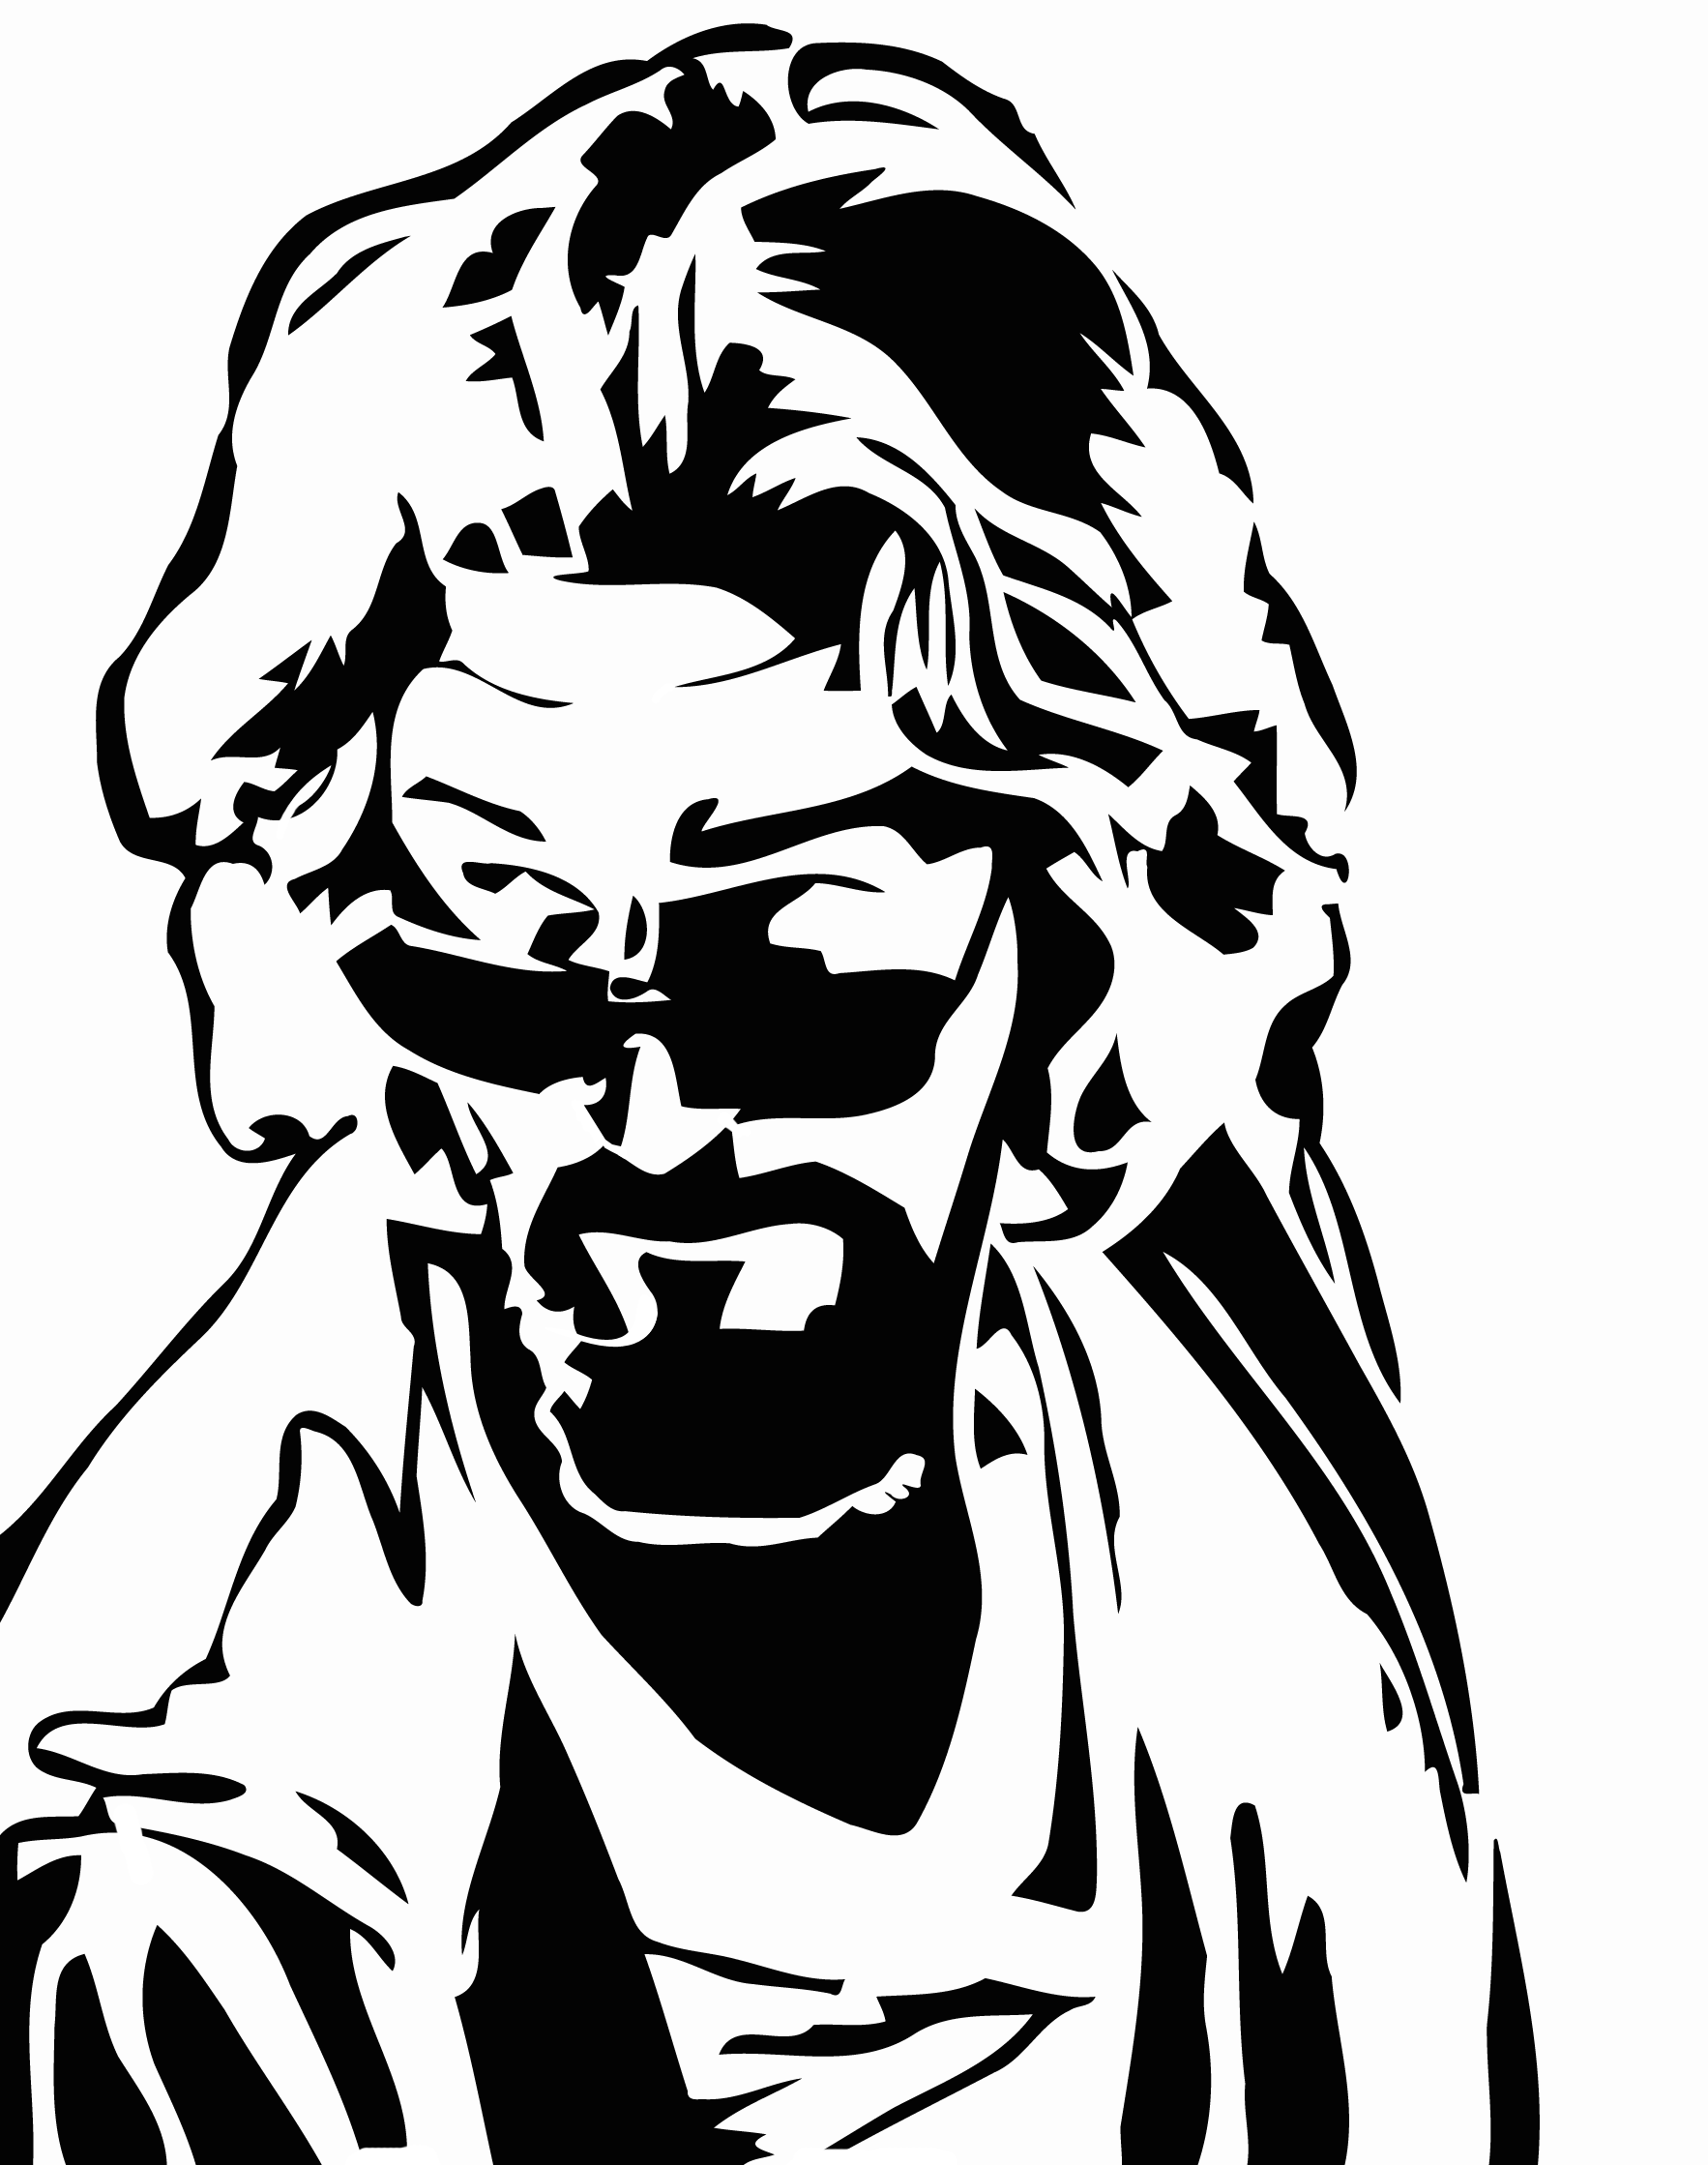 big lebowski dude stencil tshirt silk screen template http://www.